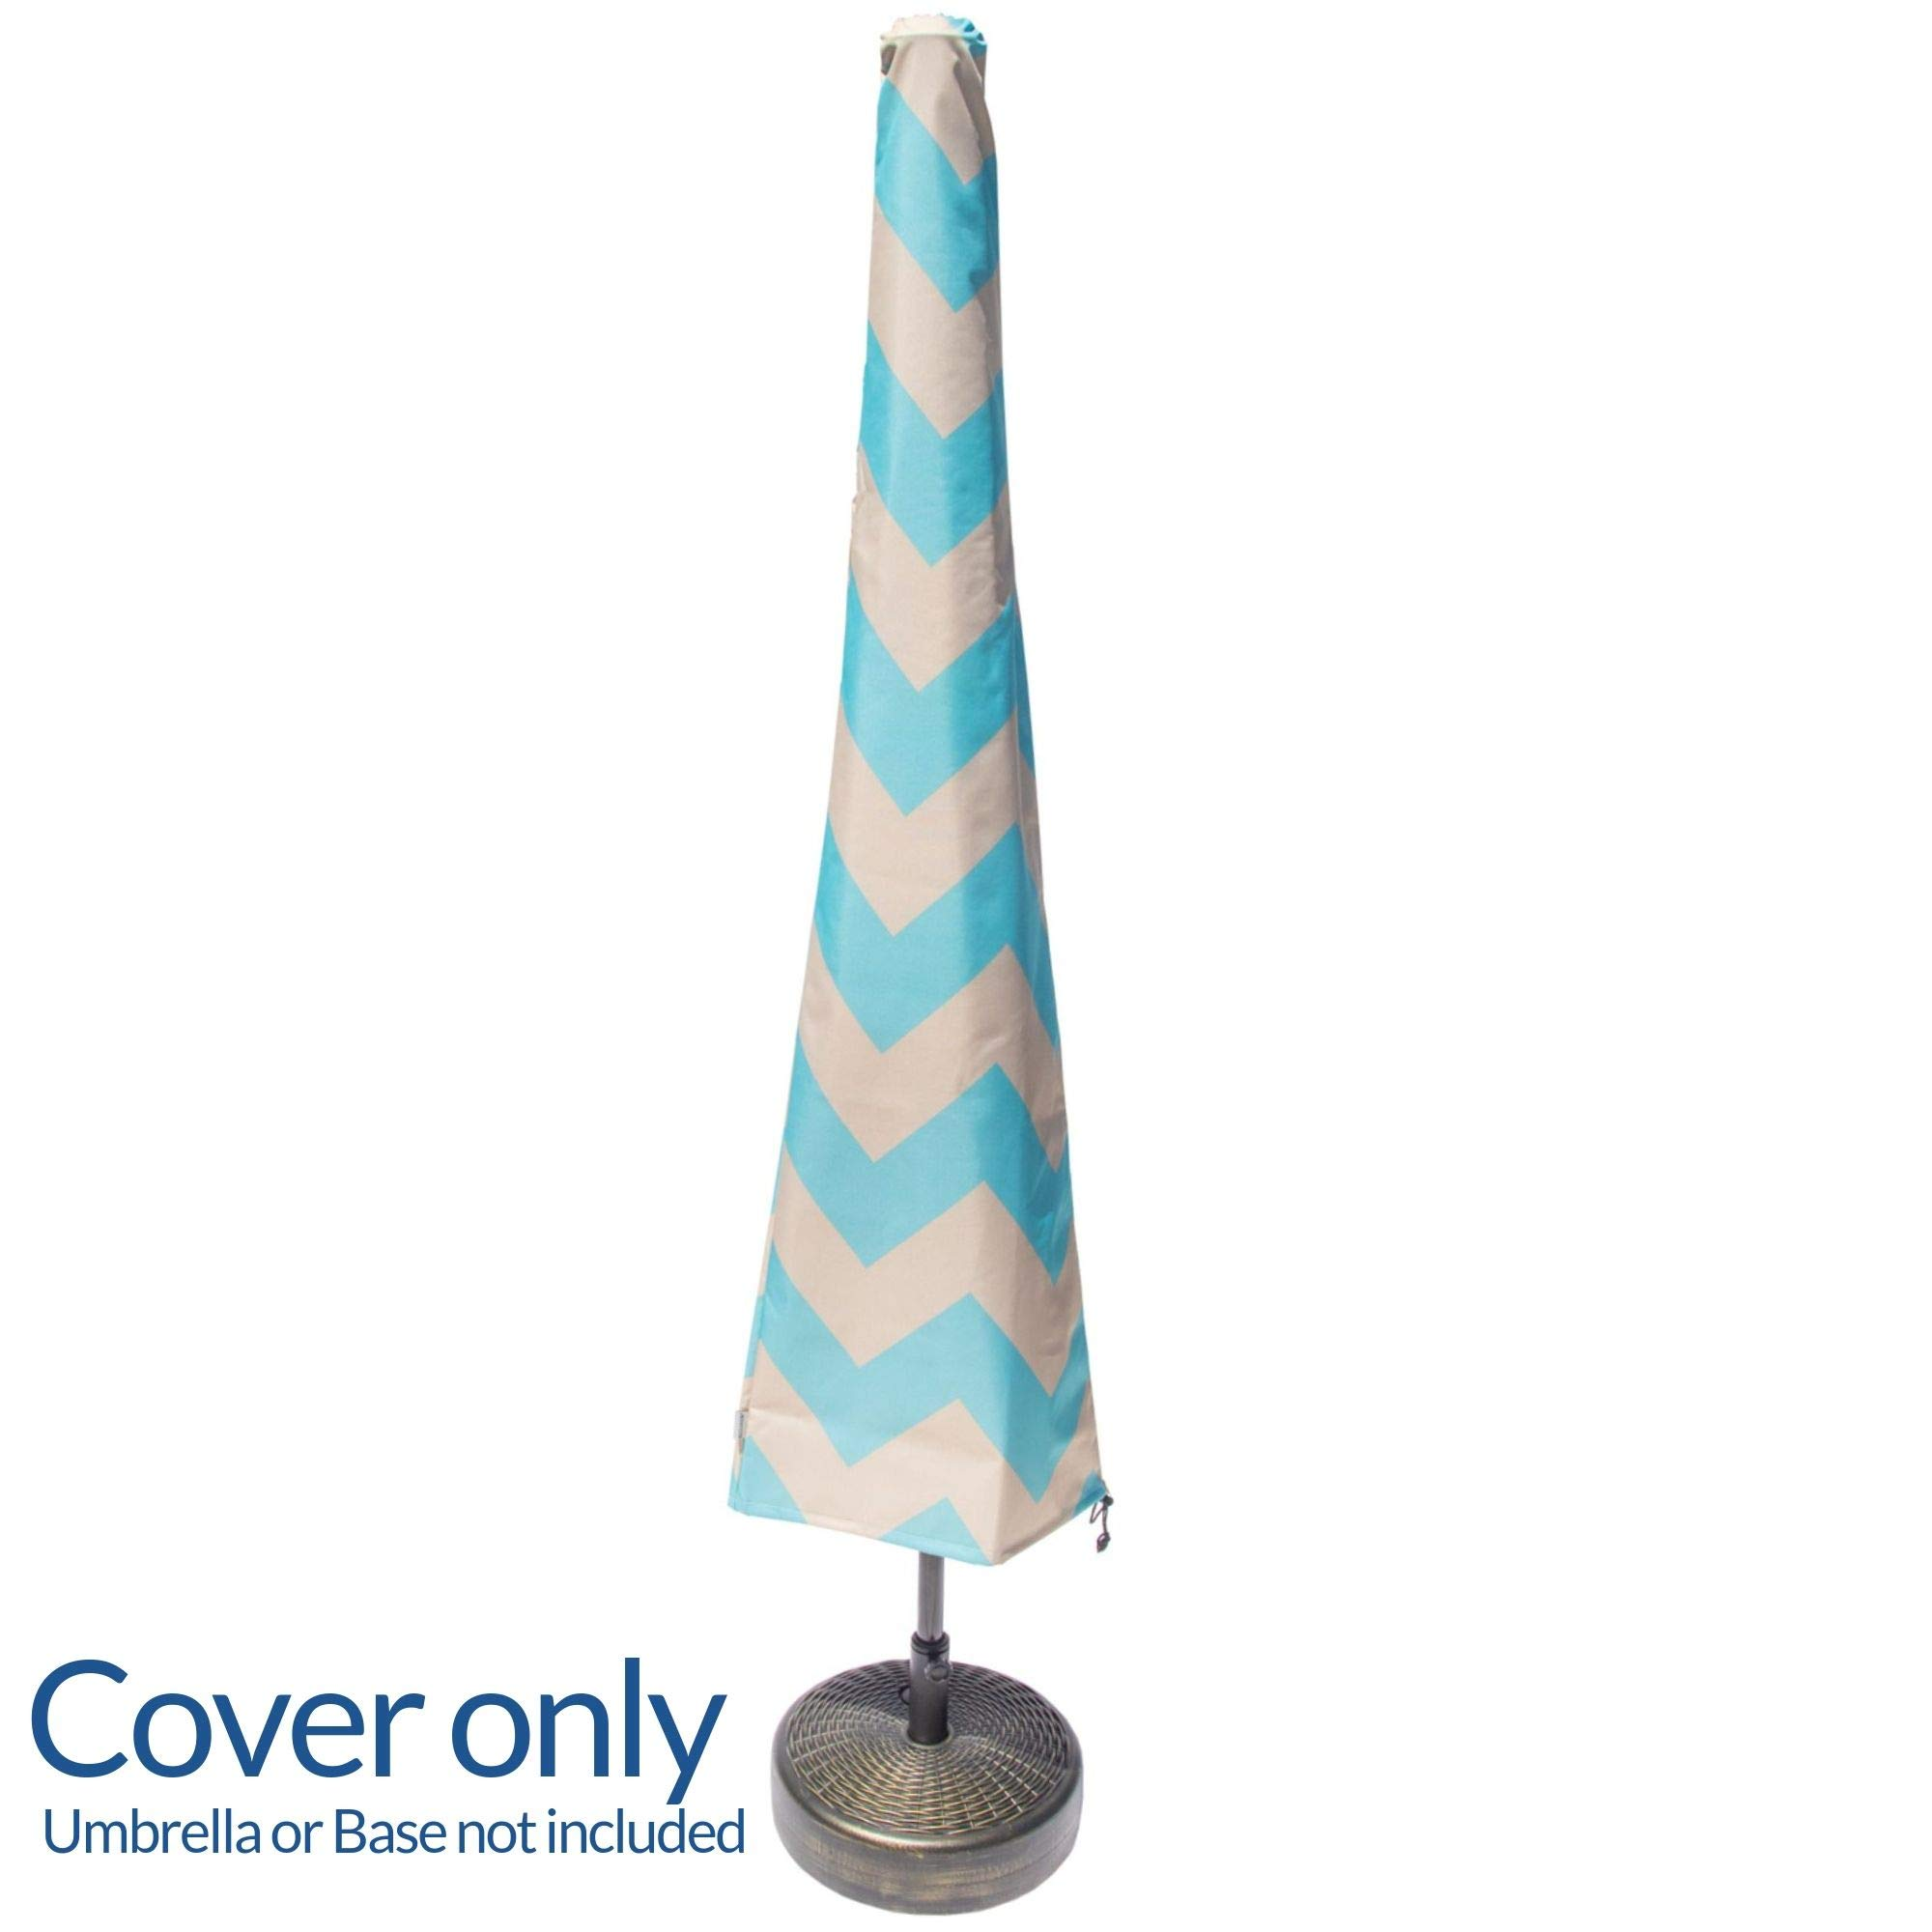 Nest & Nook Patio Umbrella Cover | Umbrella Covers for Outdoor Umbrellas Waterproof 7ft to 11ft - Blue and Creme Chevron Striped | Heavy-Duty and Easy-to-use Outdoor Parasol Covers with Zipper by Nest & Nook